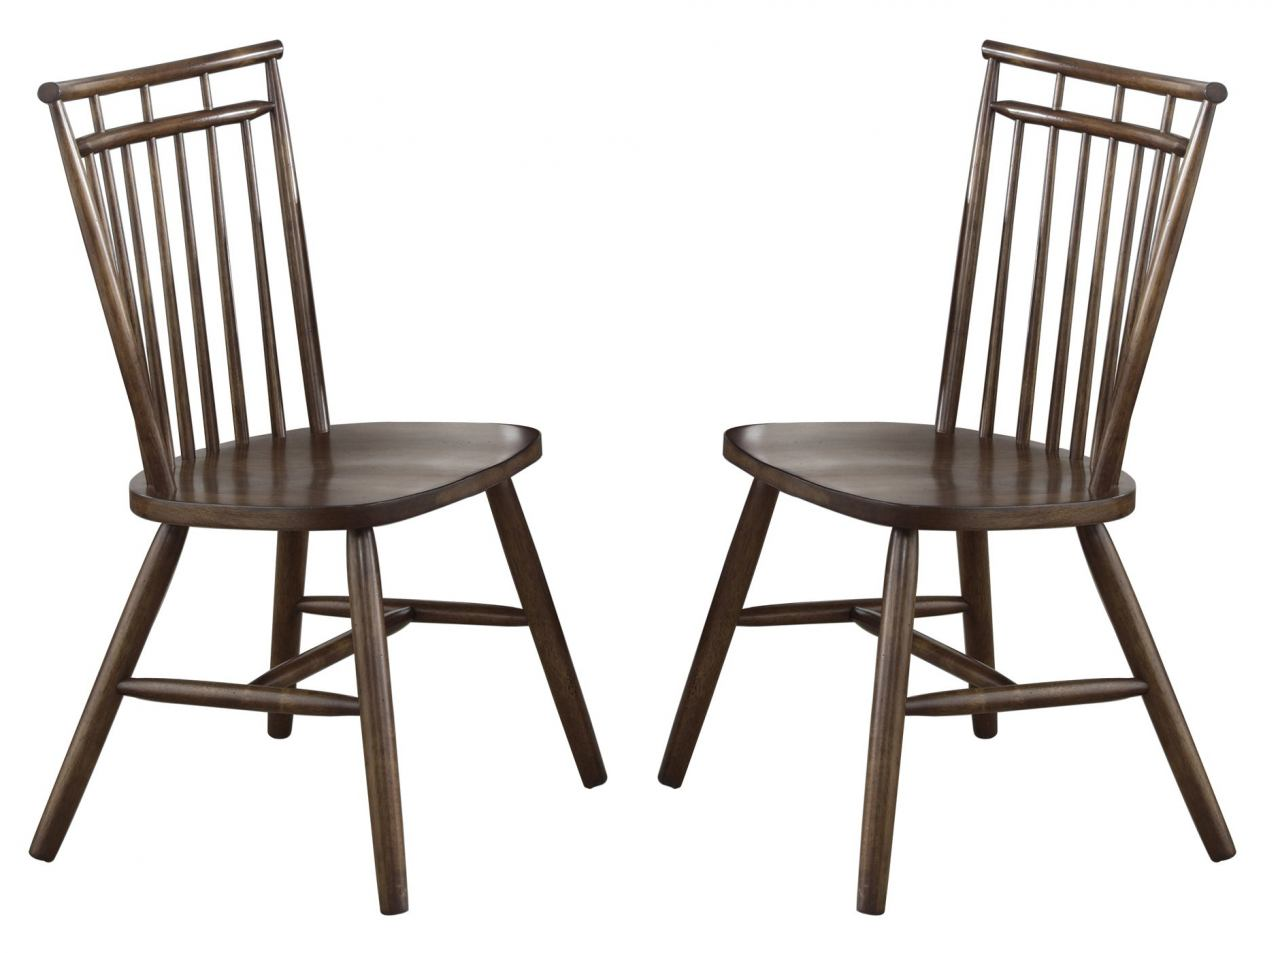 Liberty Furniture Creations II Spindle Back Side Chair in Tobacco Finish 38-C4000S (Set of 2)